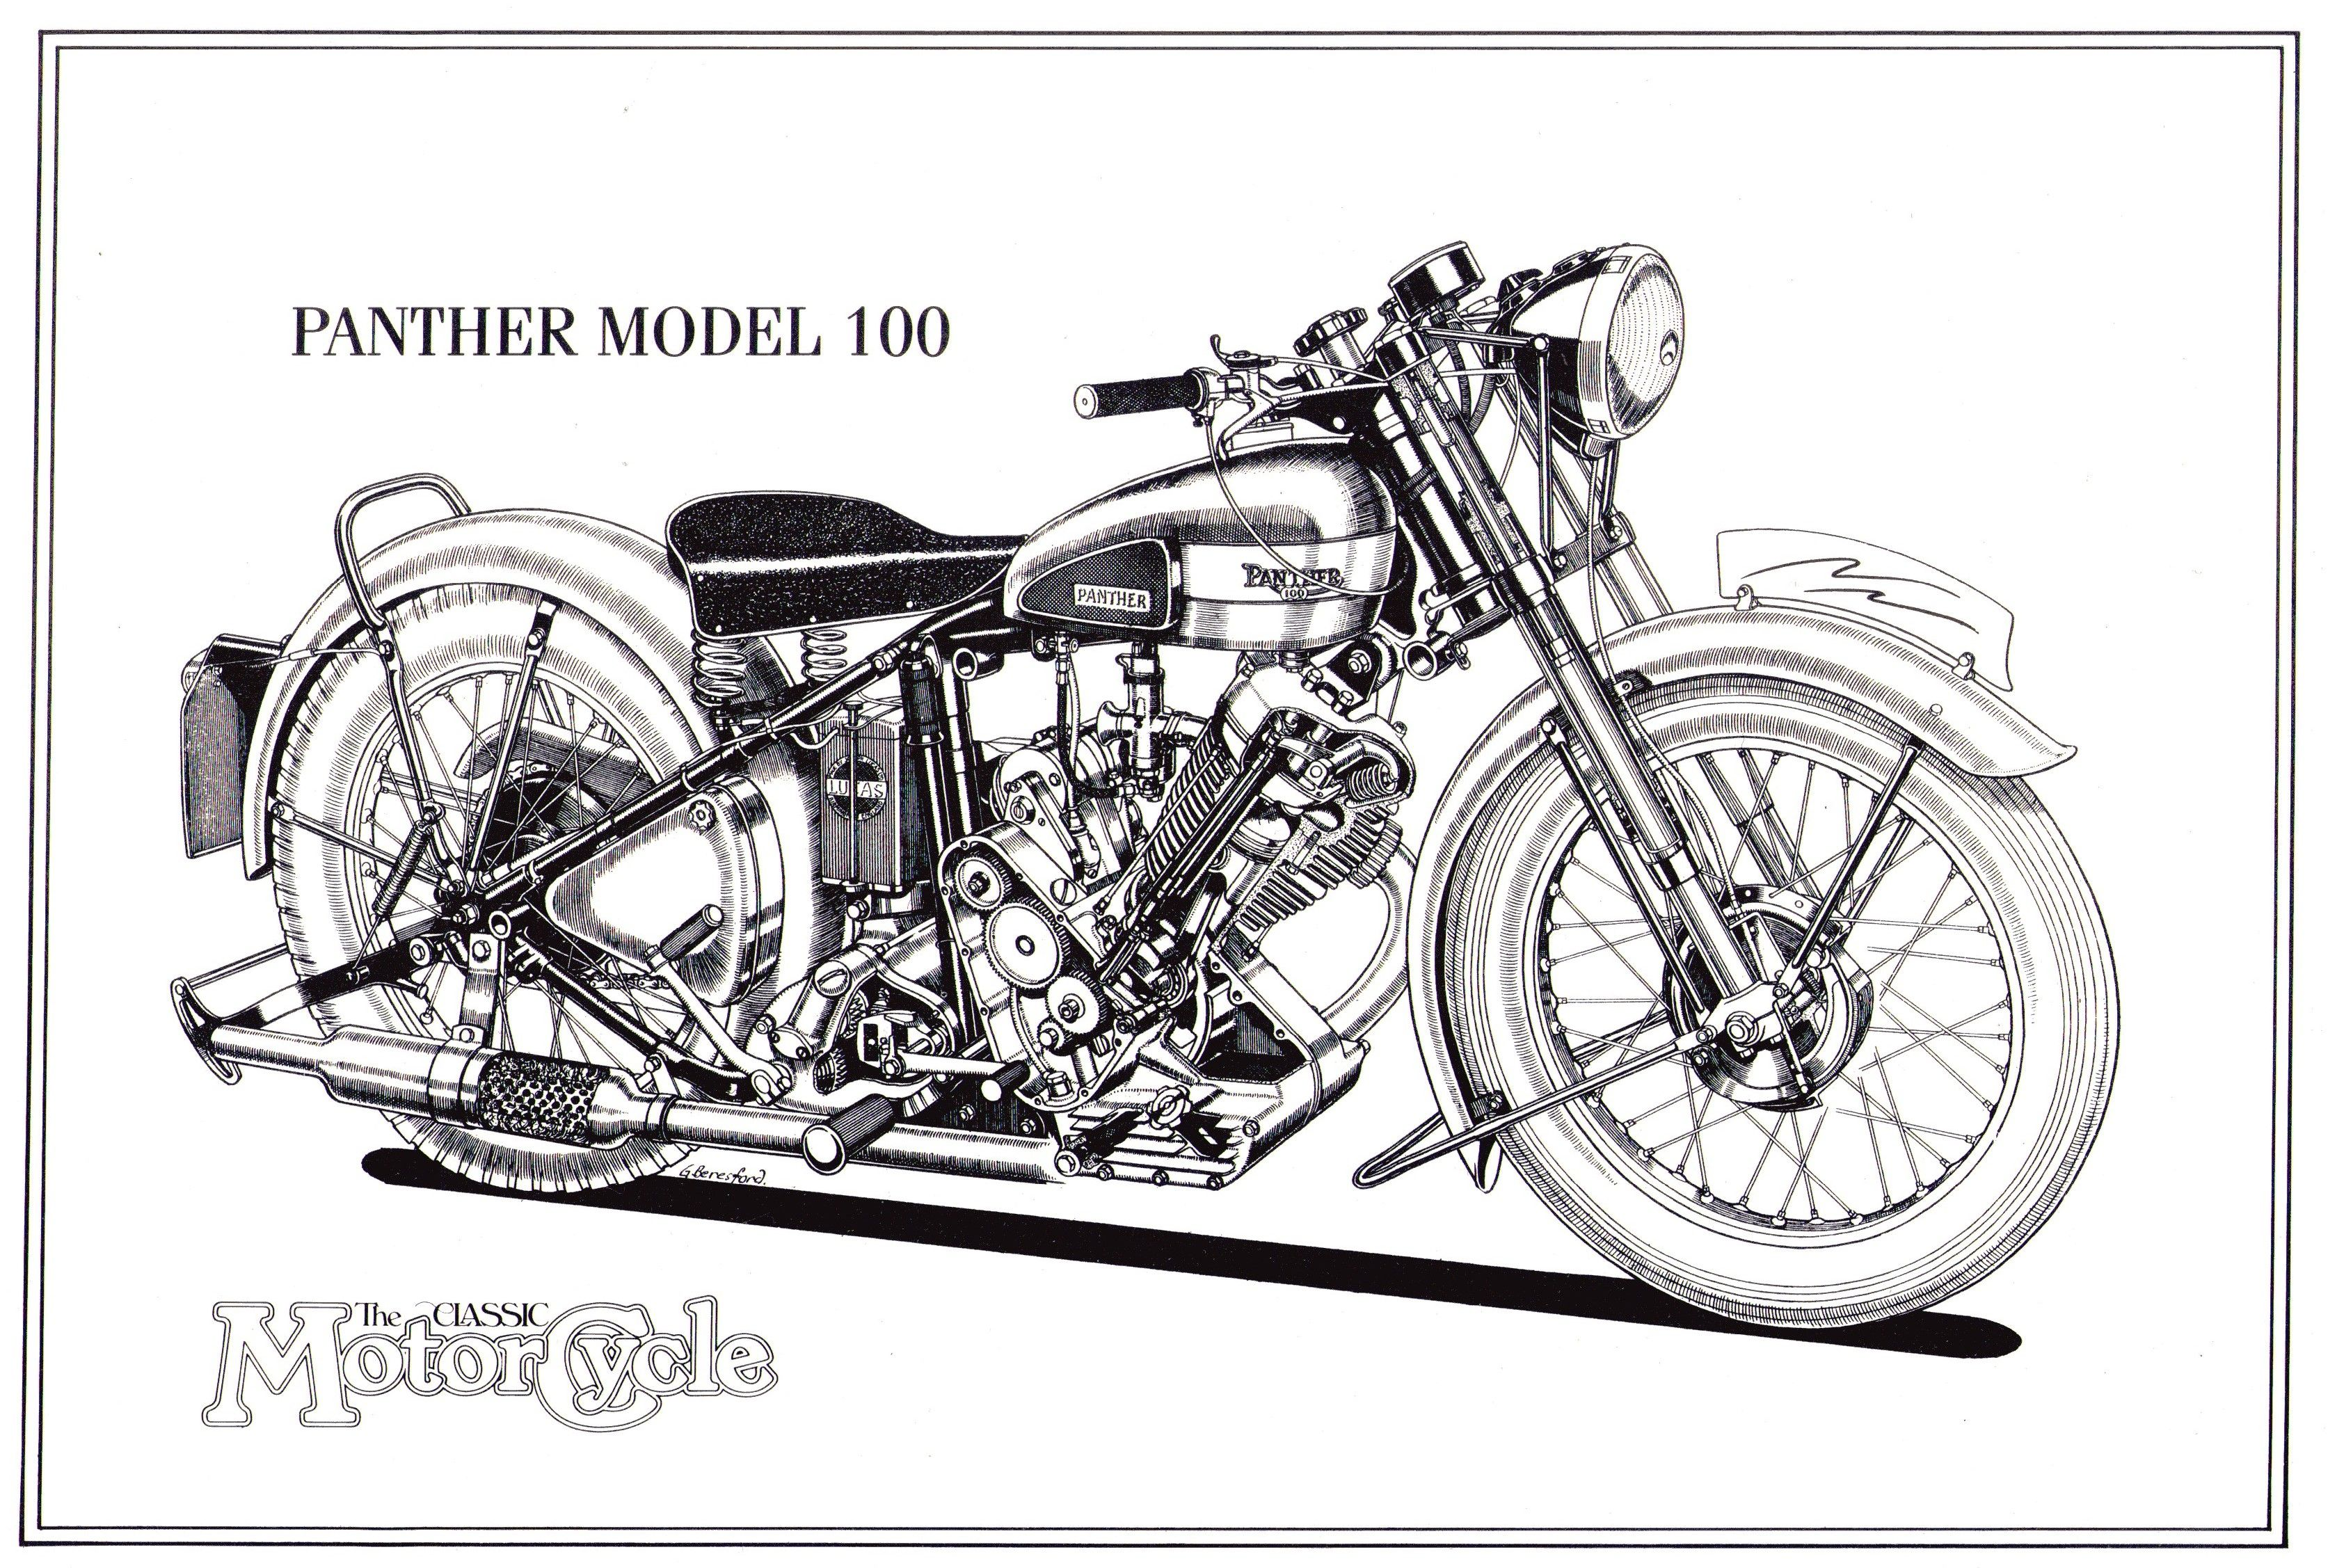 Panther Model 100